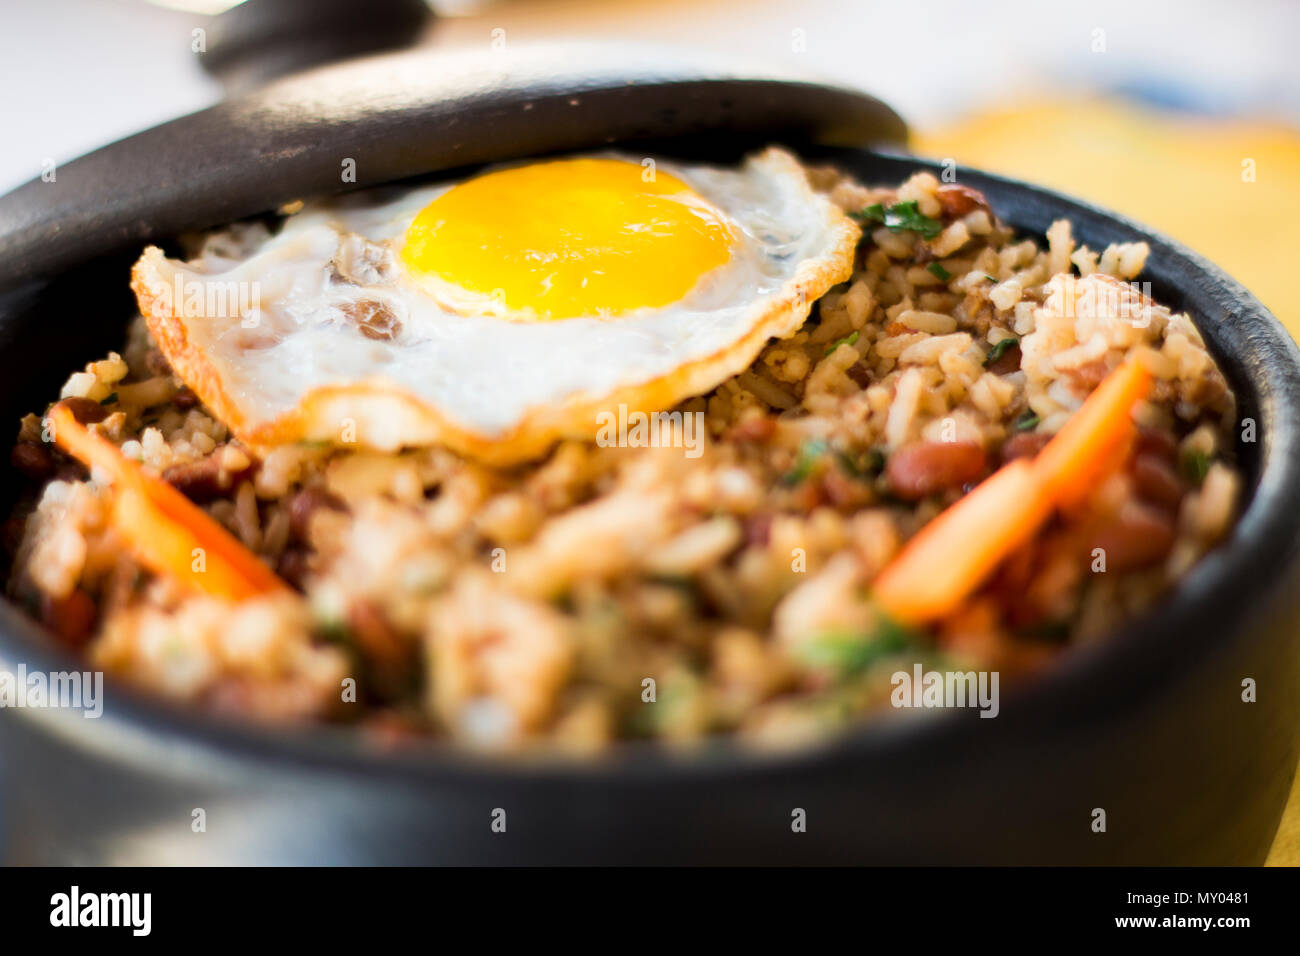 Rice with eggs - Stock Image